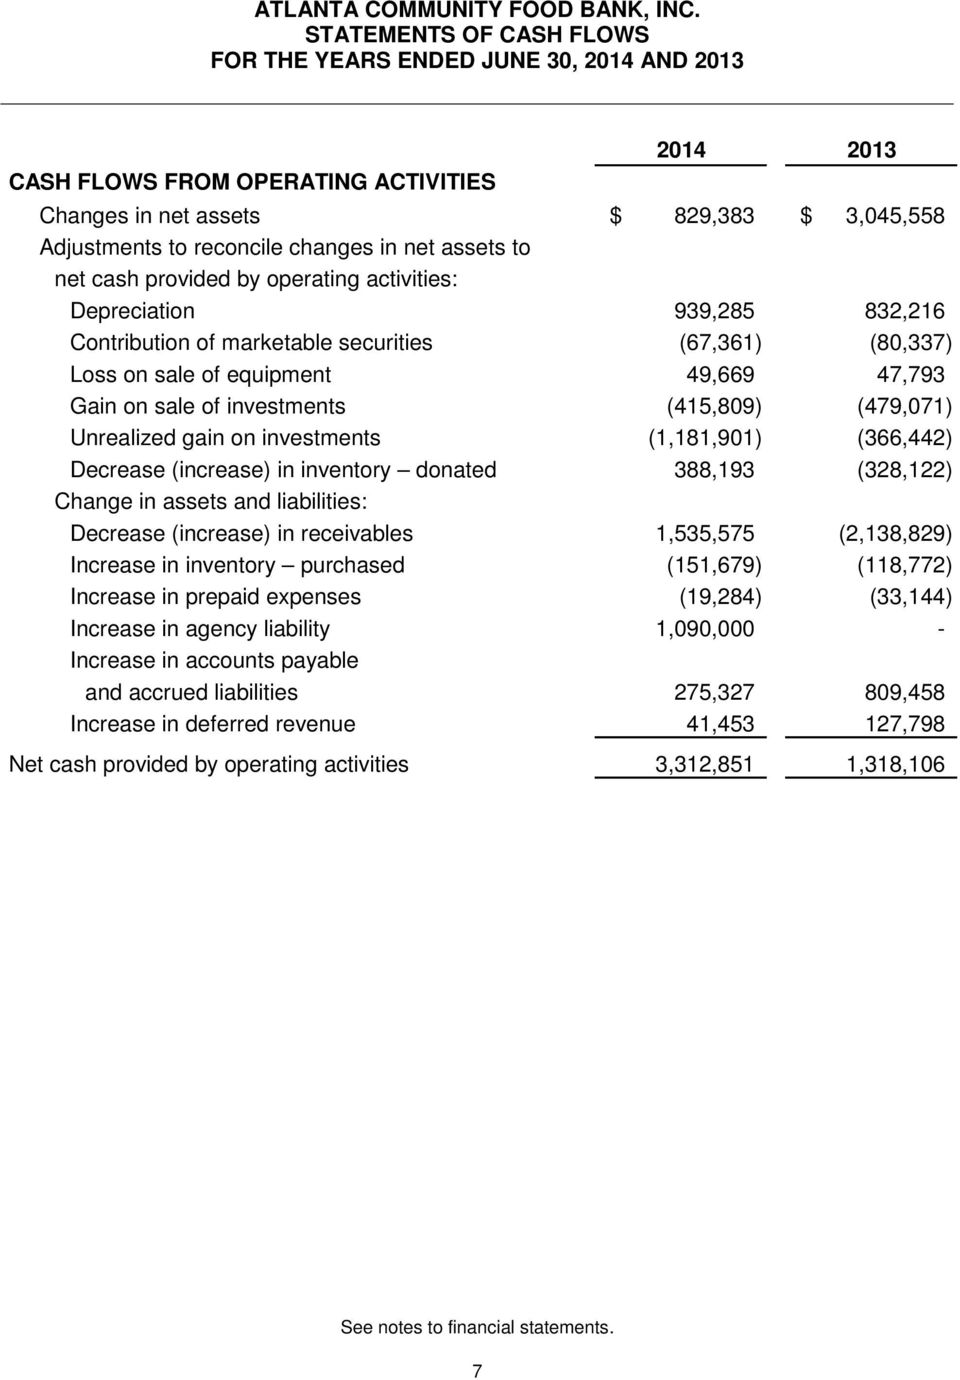 (415,809) (479,071) Unrealized gain on investments (1,181,901) (366,442) Decrease (increase) in inventory donated 388,193 (328,122) Change in assets and liabilities: Decrease (increase) in